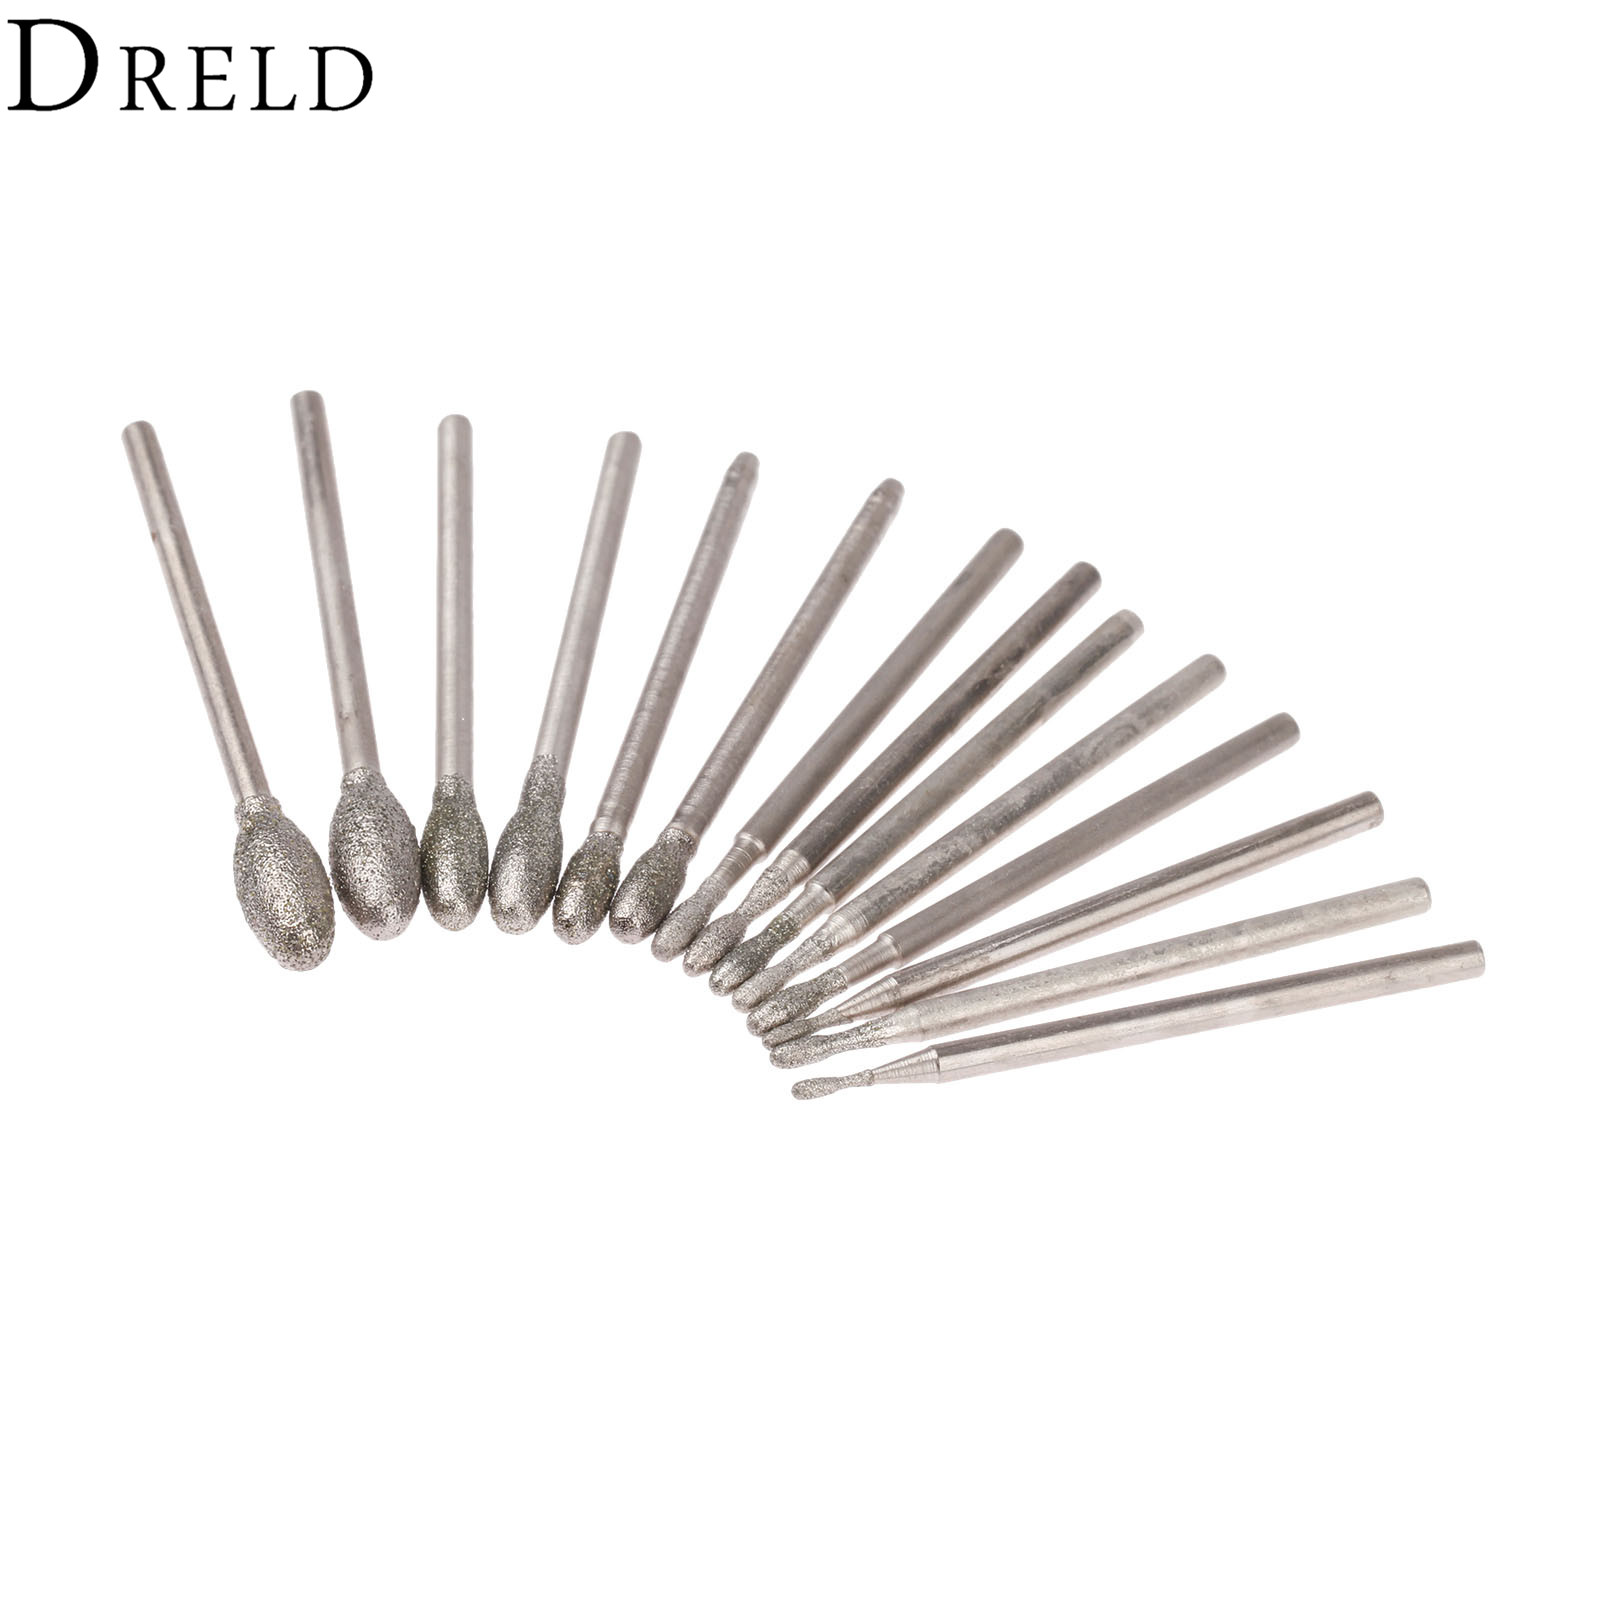 DRELD 14Pcs Dremel Accesories Oval Diamond Grinding Head Burrs Bits 2.35mm Shank Jade Stone Carving Polishing Engraving Tool